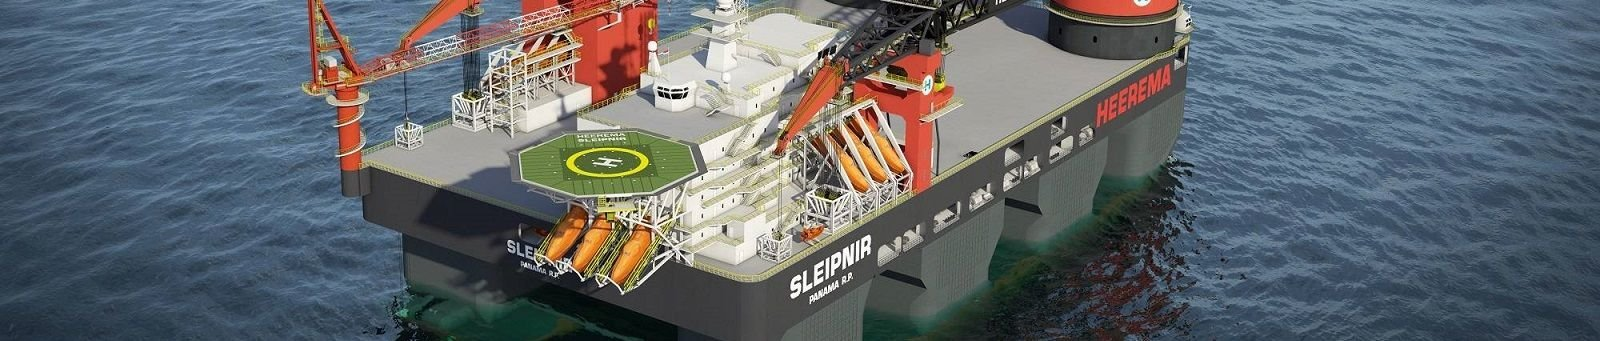 Heinen & Hopman Singapore to supply HVAC for the world's largest semi-submersible crane vessel